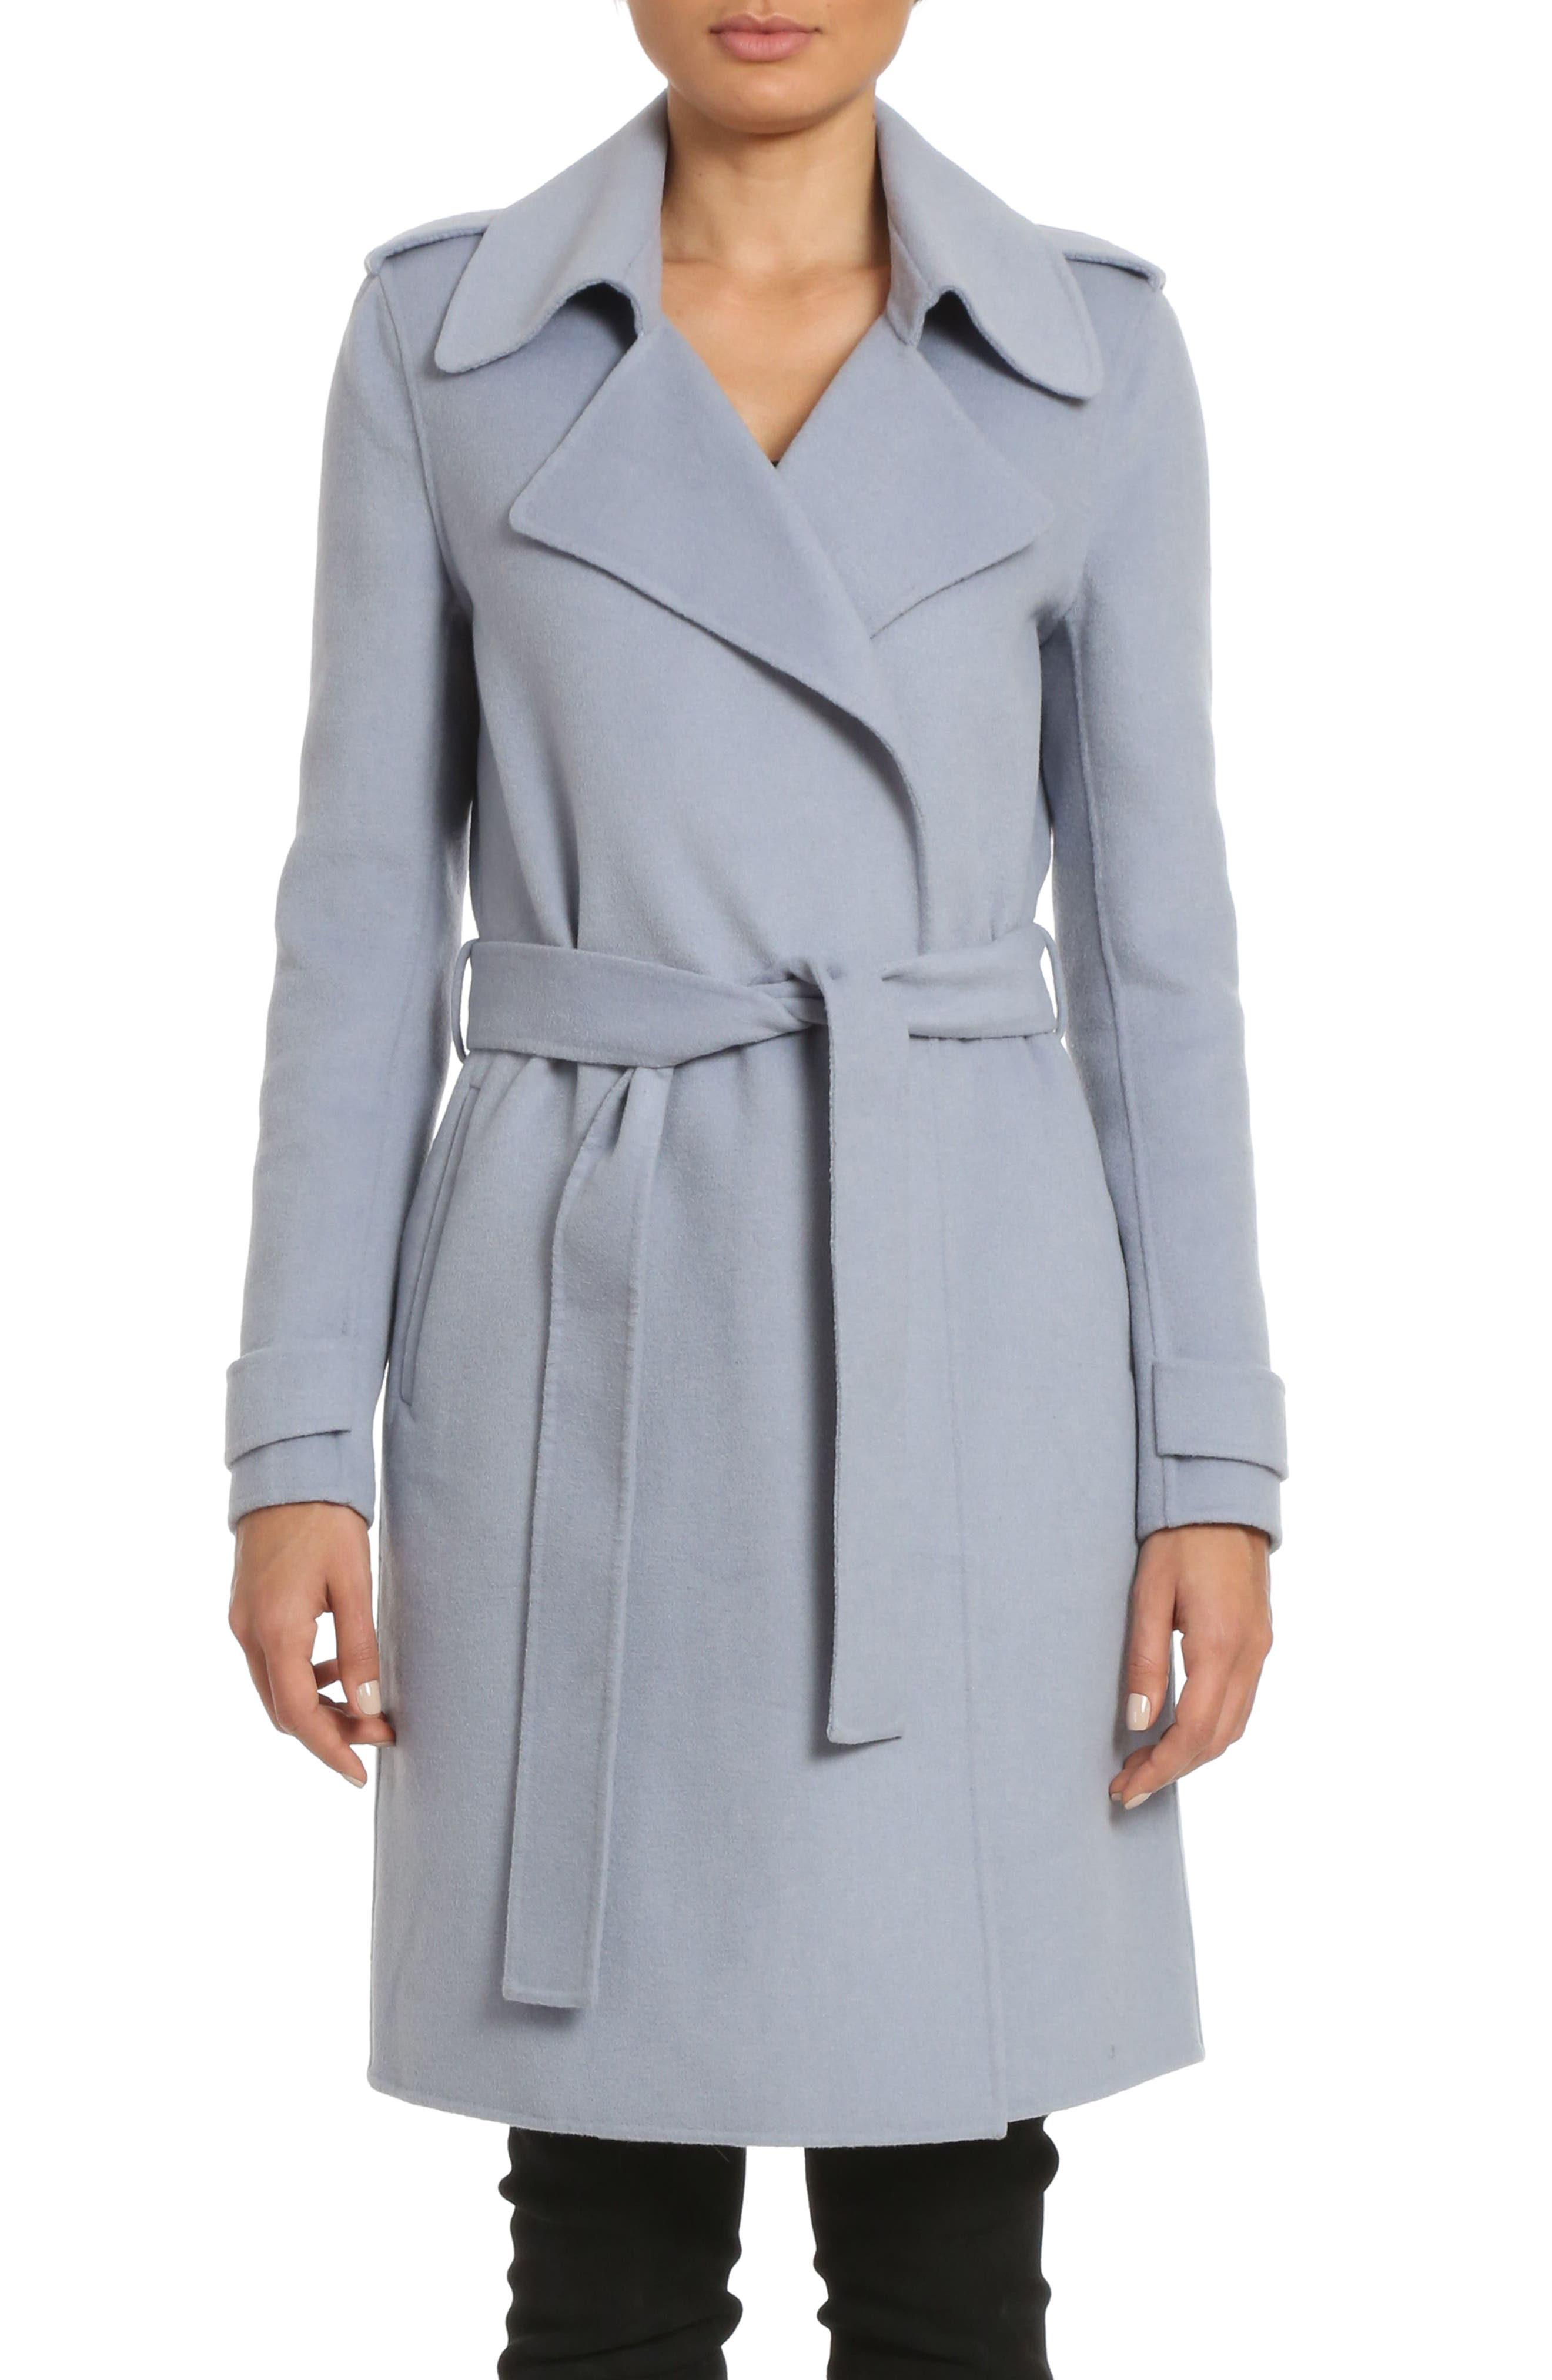 Badgley Mischka Alexis Double Face Wool Blend Long Wrap Coat